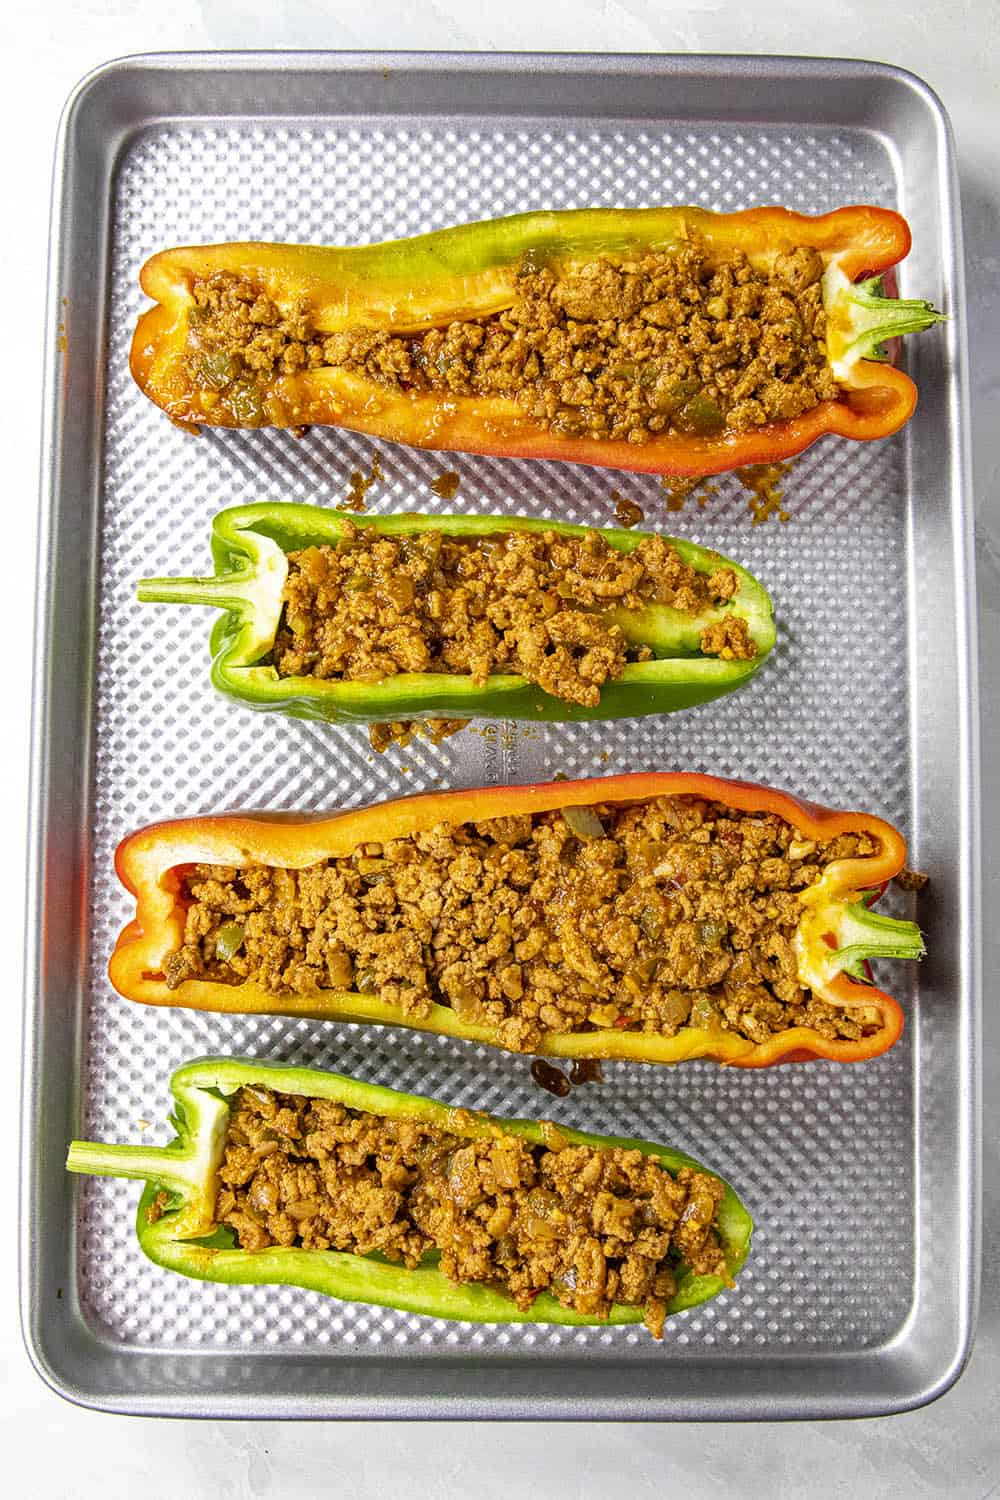 The sliced peppers stuffed with ground taco meat